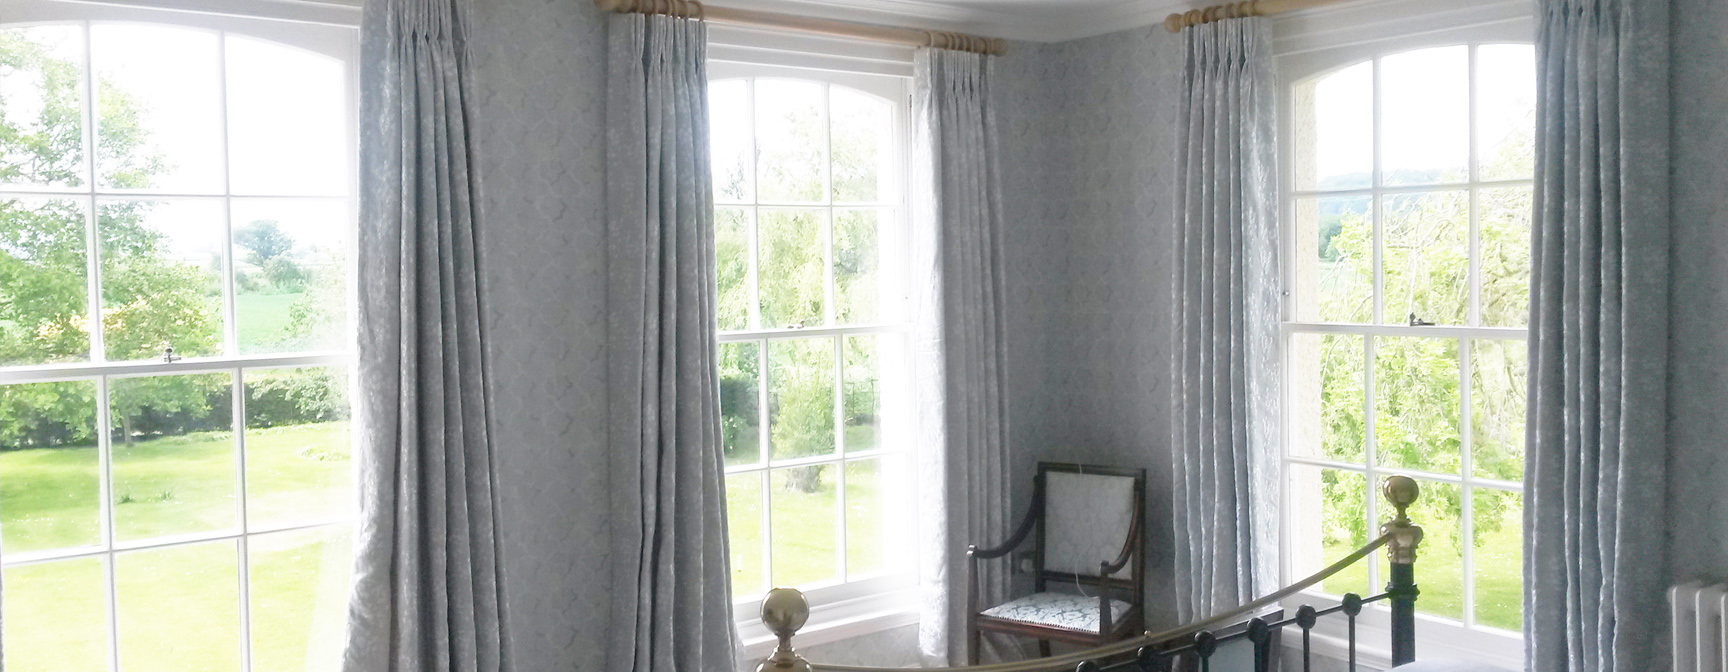 Lined and interlined pinch/triple pleat curtains - Made to measure curtains in Gloucestershire